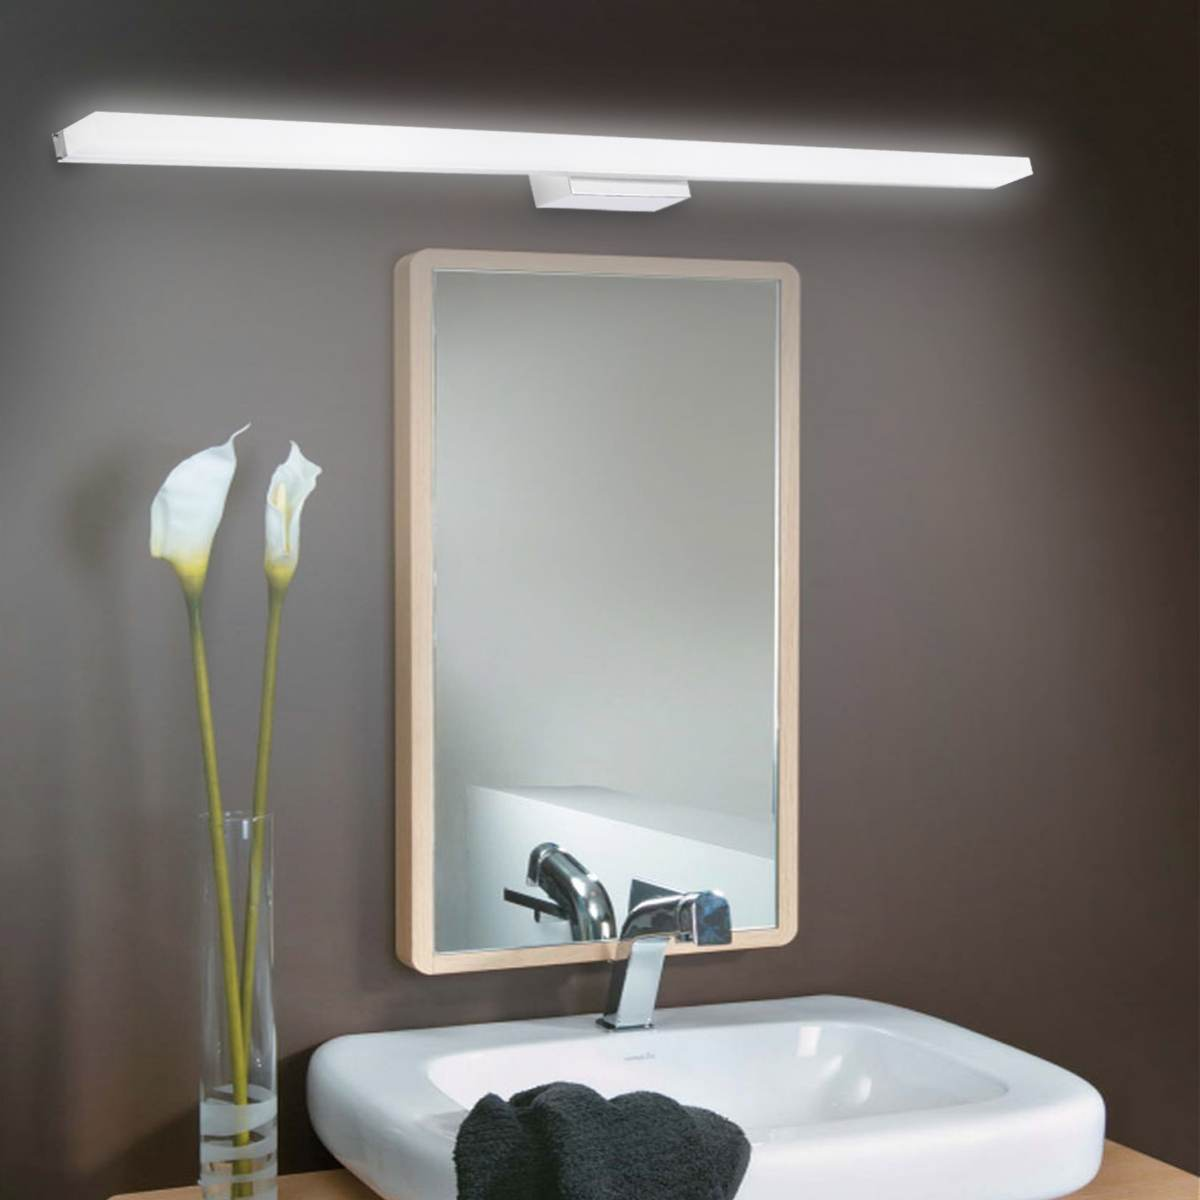 High Quality 100cm 16W 88 LED Mirror Front Lamp Morden Bathroom Toilet Vanity Wall Makeup Light Wall Lamp Stainless Steel 1280LMHigh Quality 100cm 16W 88 LED Mirror Front Lamp Morden Bathroom Toilet Vanity Wall Makeup Light Wall Lamp Stainless Steel 1280LM